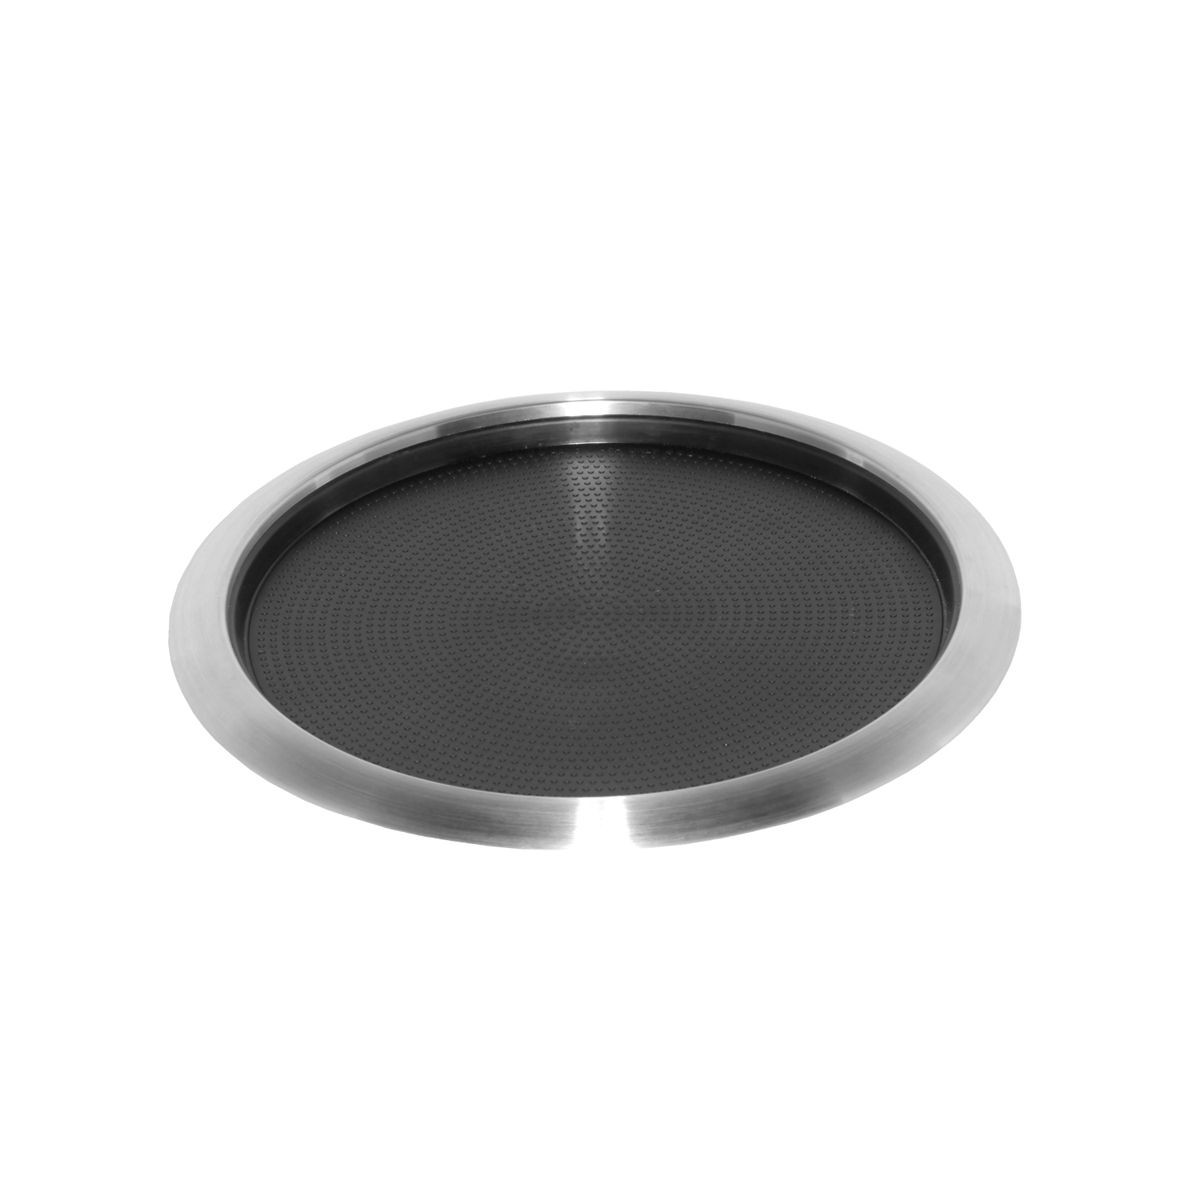 Service Ideas TR1412RI Non-Slip Tray with Removable Rubber Insert, Stainless 14""